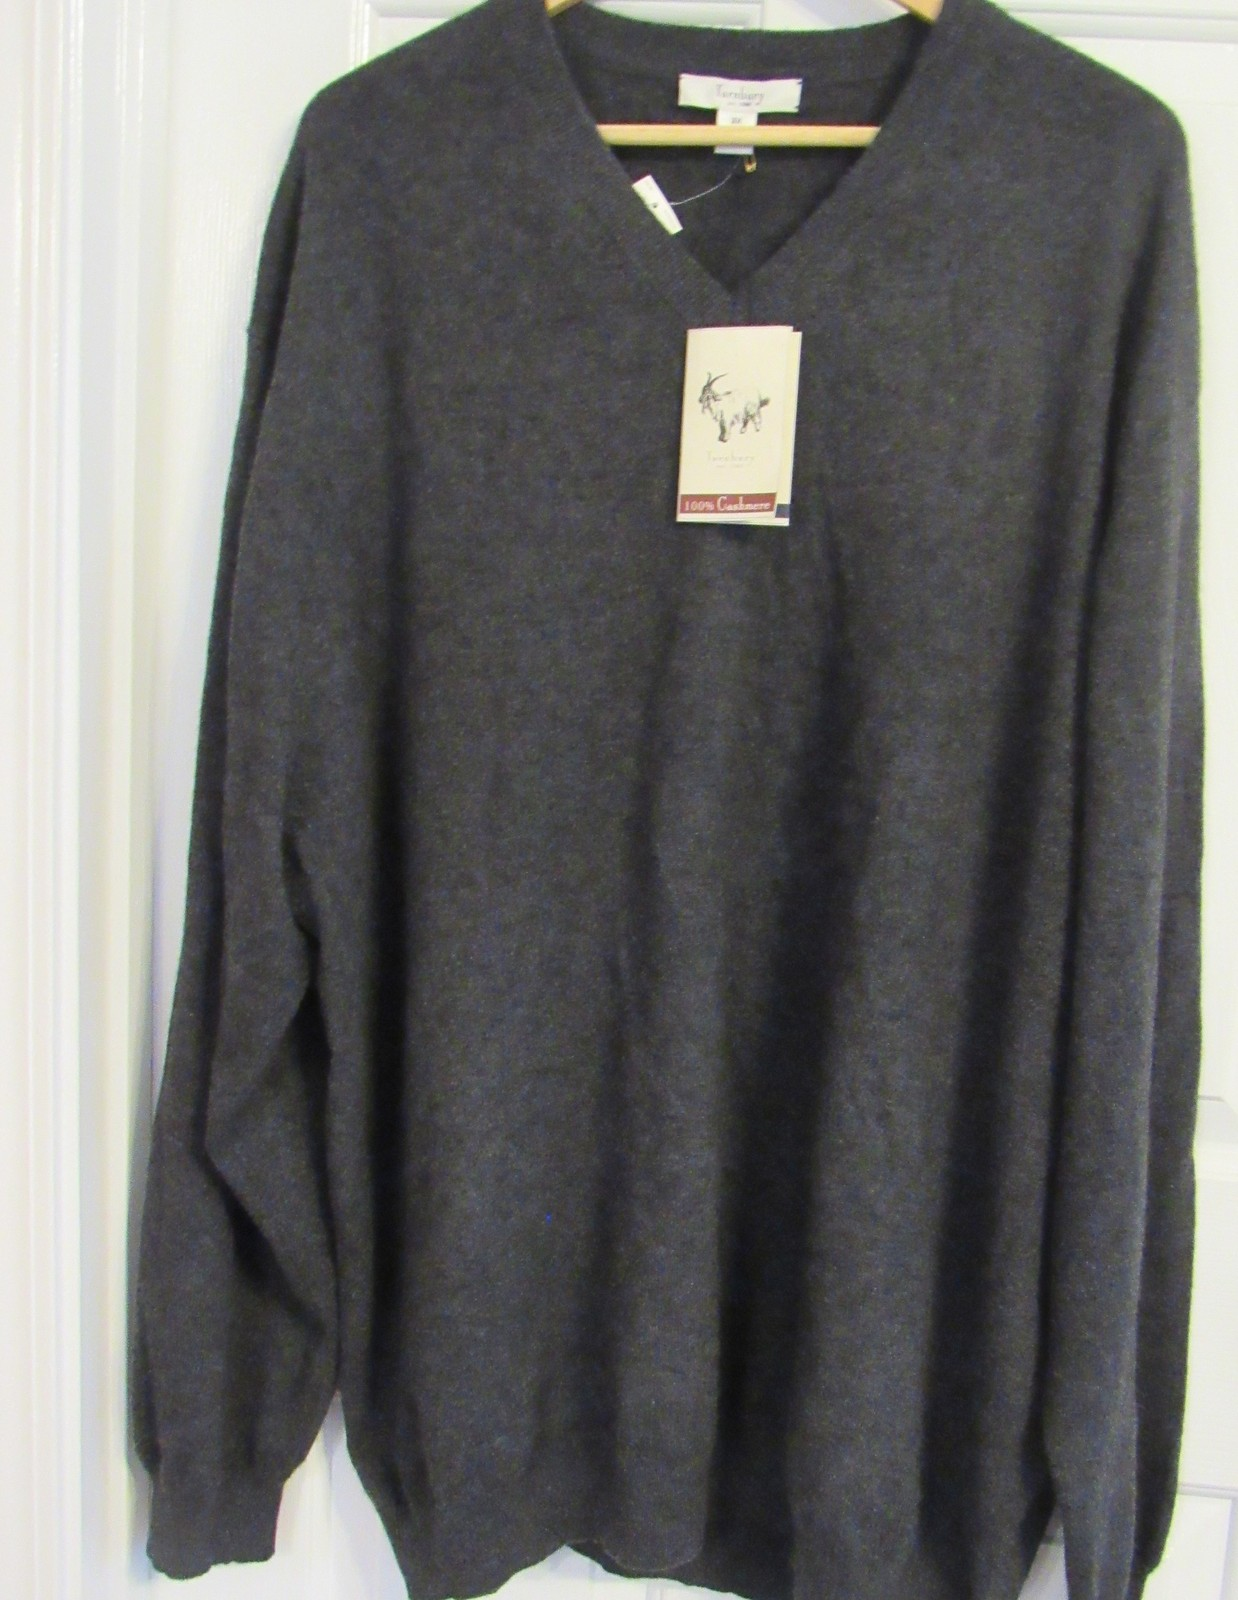 TURNBURY MEN'S SWEATER 100%CASHMERE X-LG MADE IN MADAGASCAR V-NECK CHARCOAL NEW